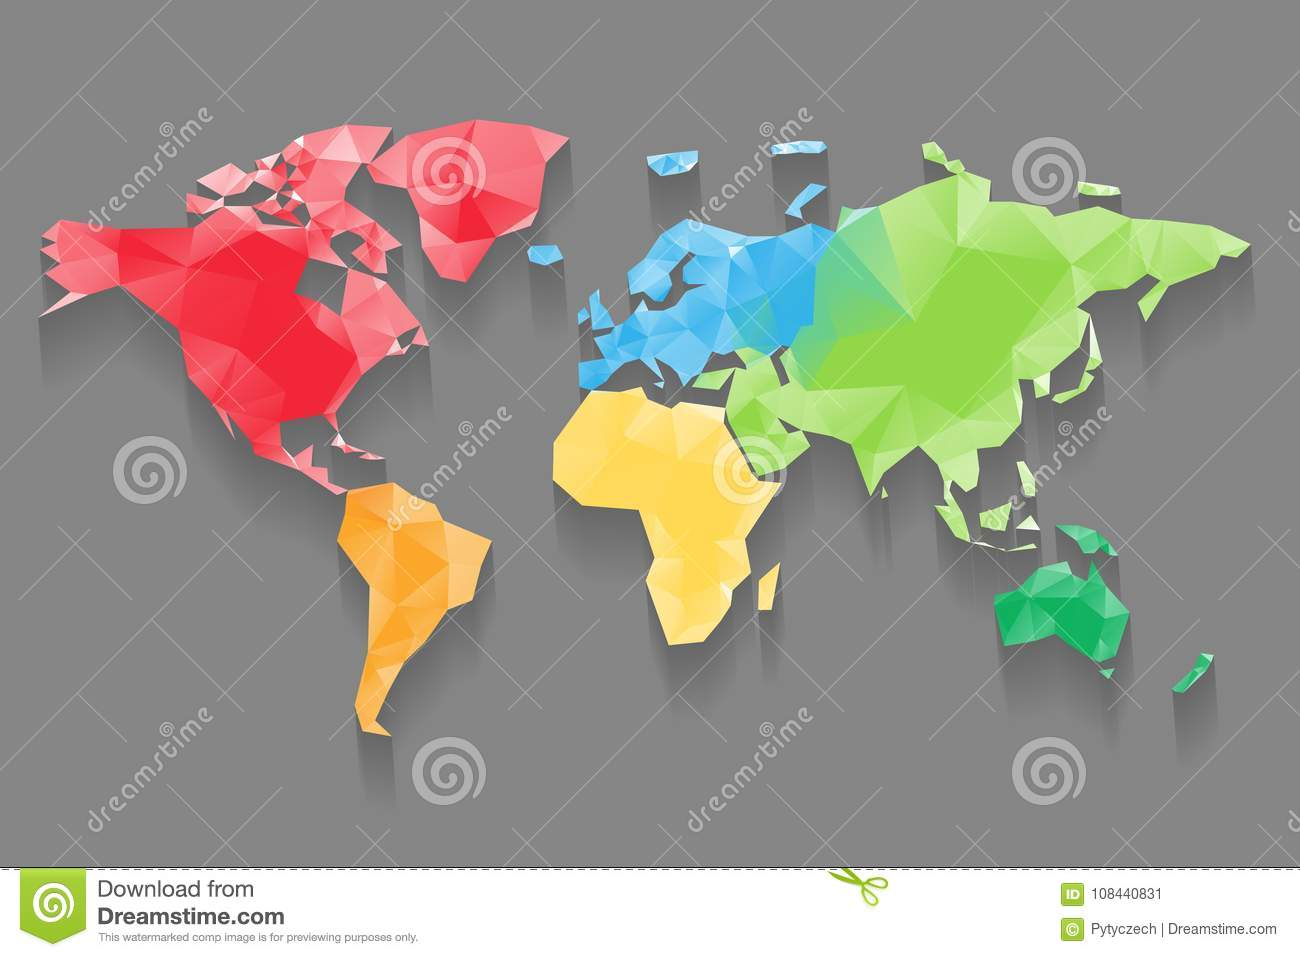 Low poly map of world divided into six continents by color download low poly map of world divided into six continents by color polygonal vector design gumiabroncs Choice Image